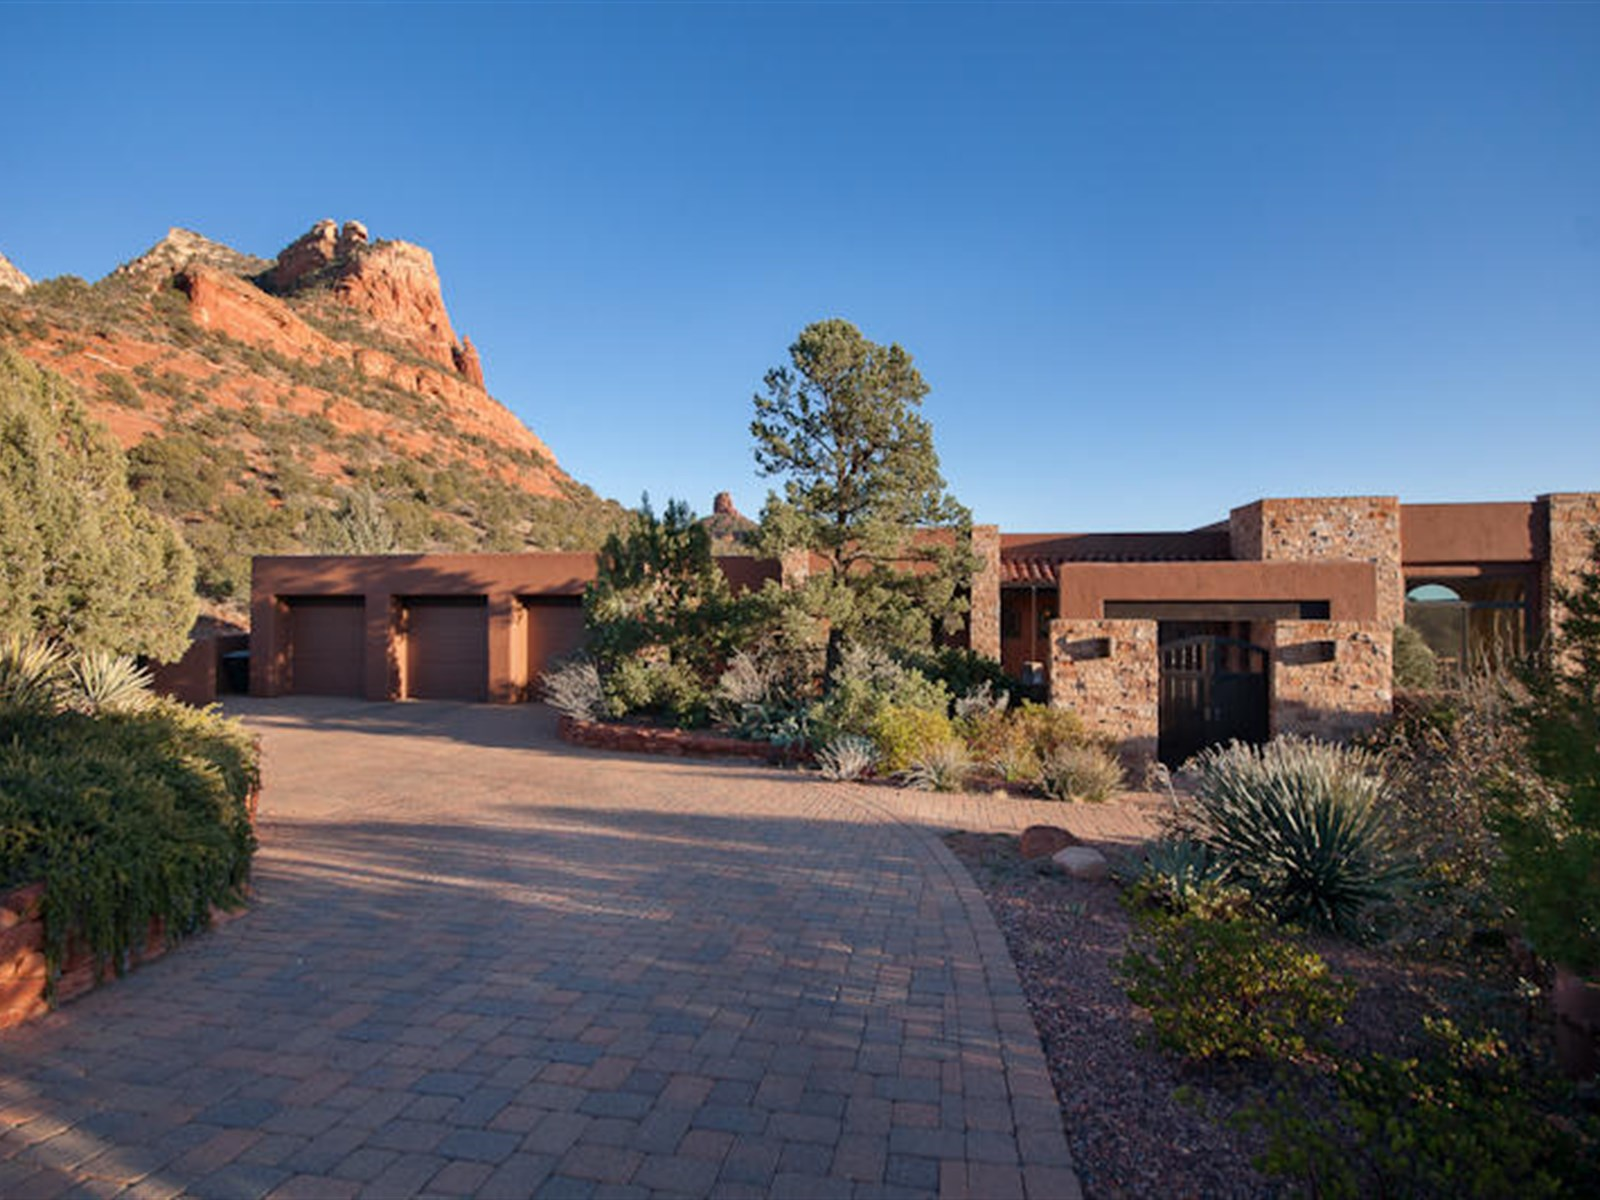 Single Family Home for Sale at Exquisite & Private Contemporary Southwest Home 20 Garnet Hill Drive Sedona, Arizona, 86336 United States